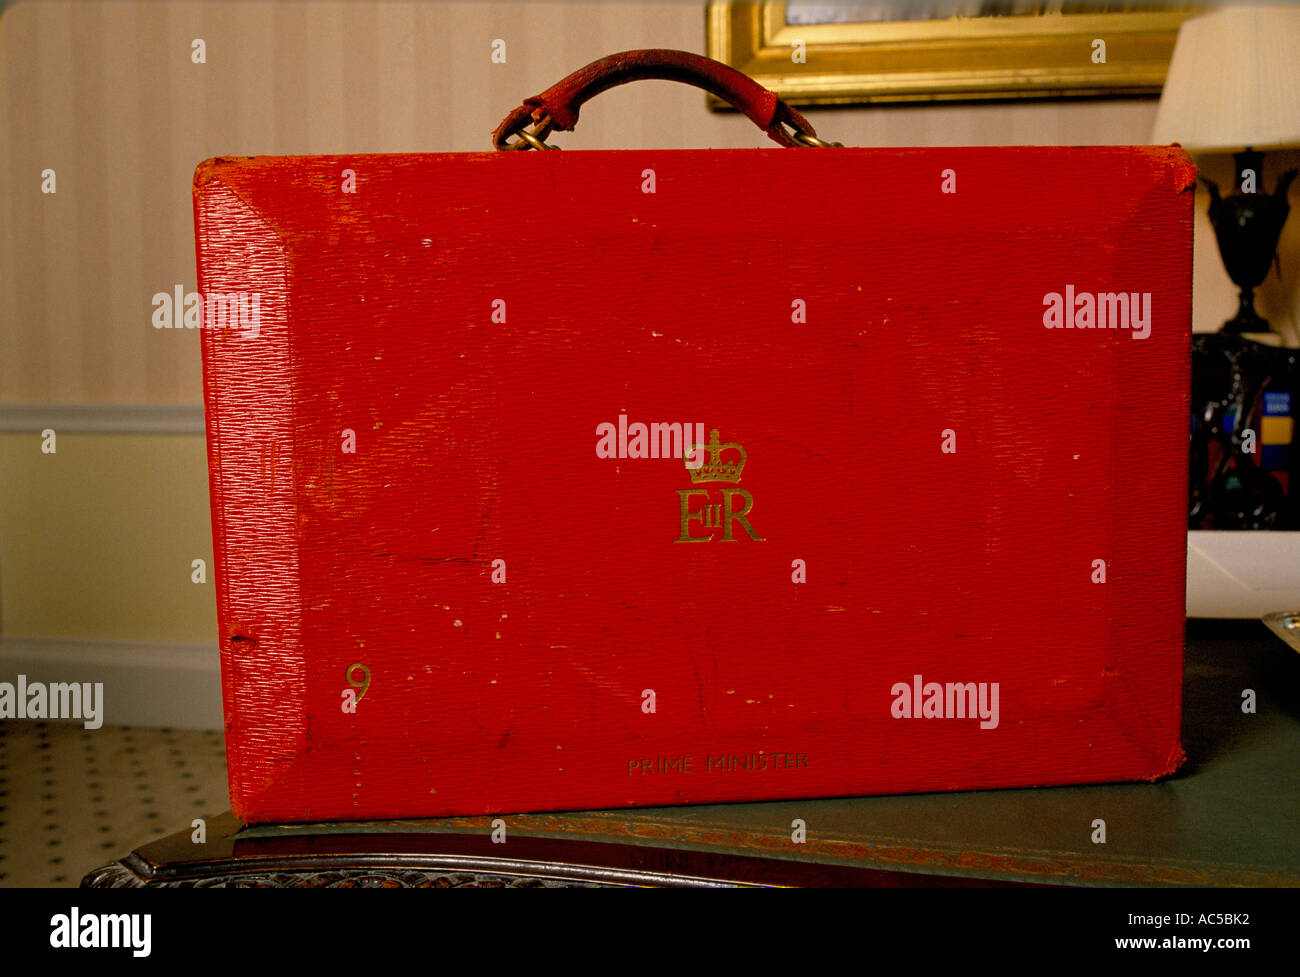 THATCHER DOWNING STREET MRS THATCHER OFFICIAL RED BRIEFCASE 1989 - Stock Image